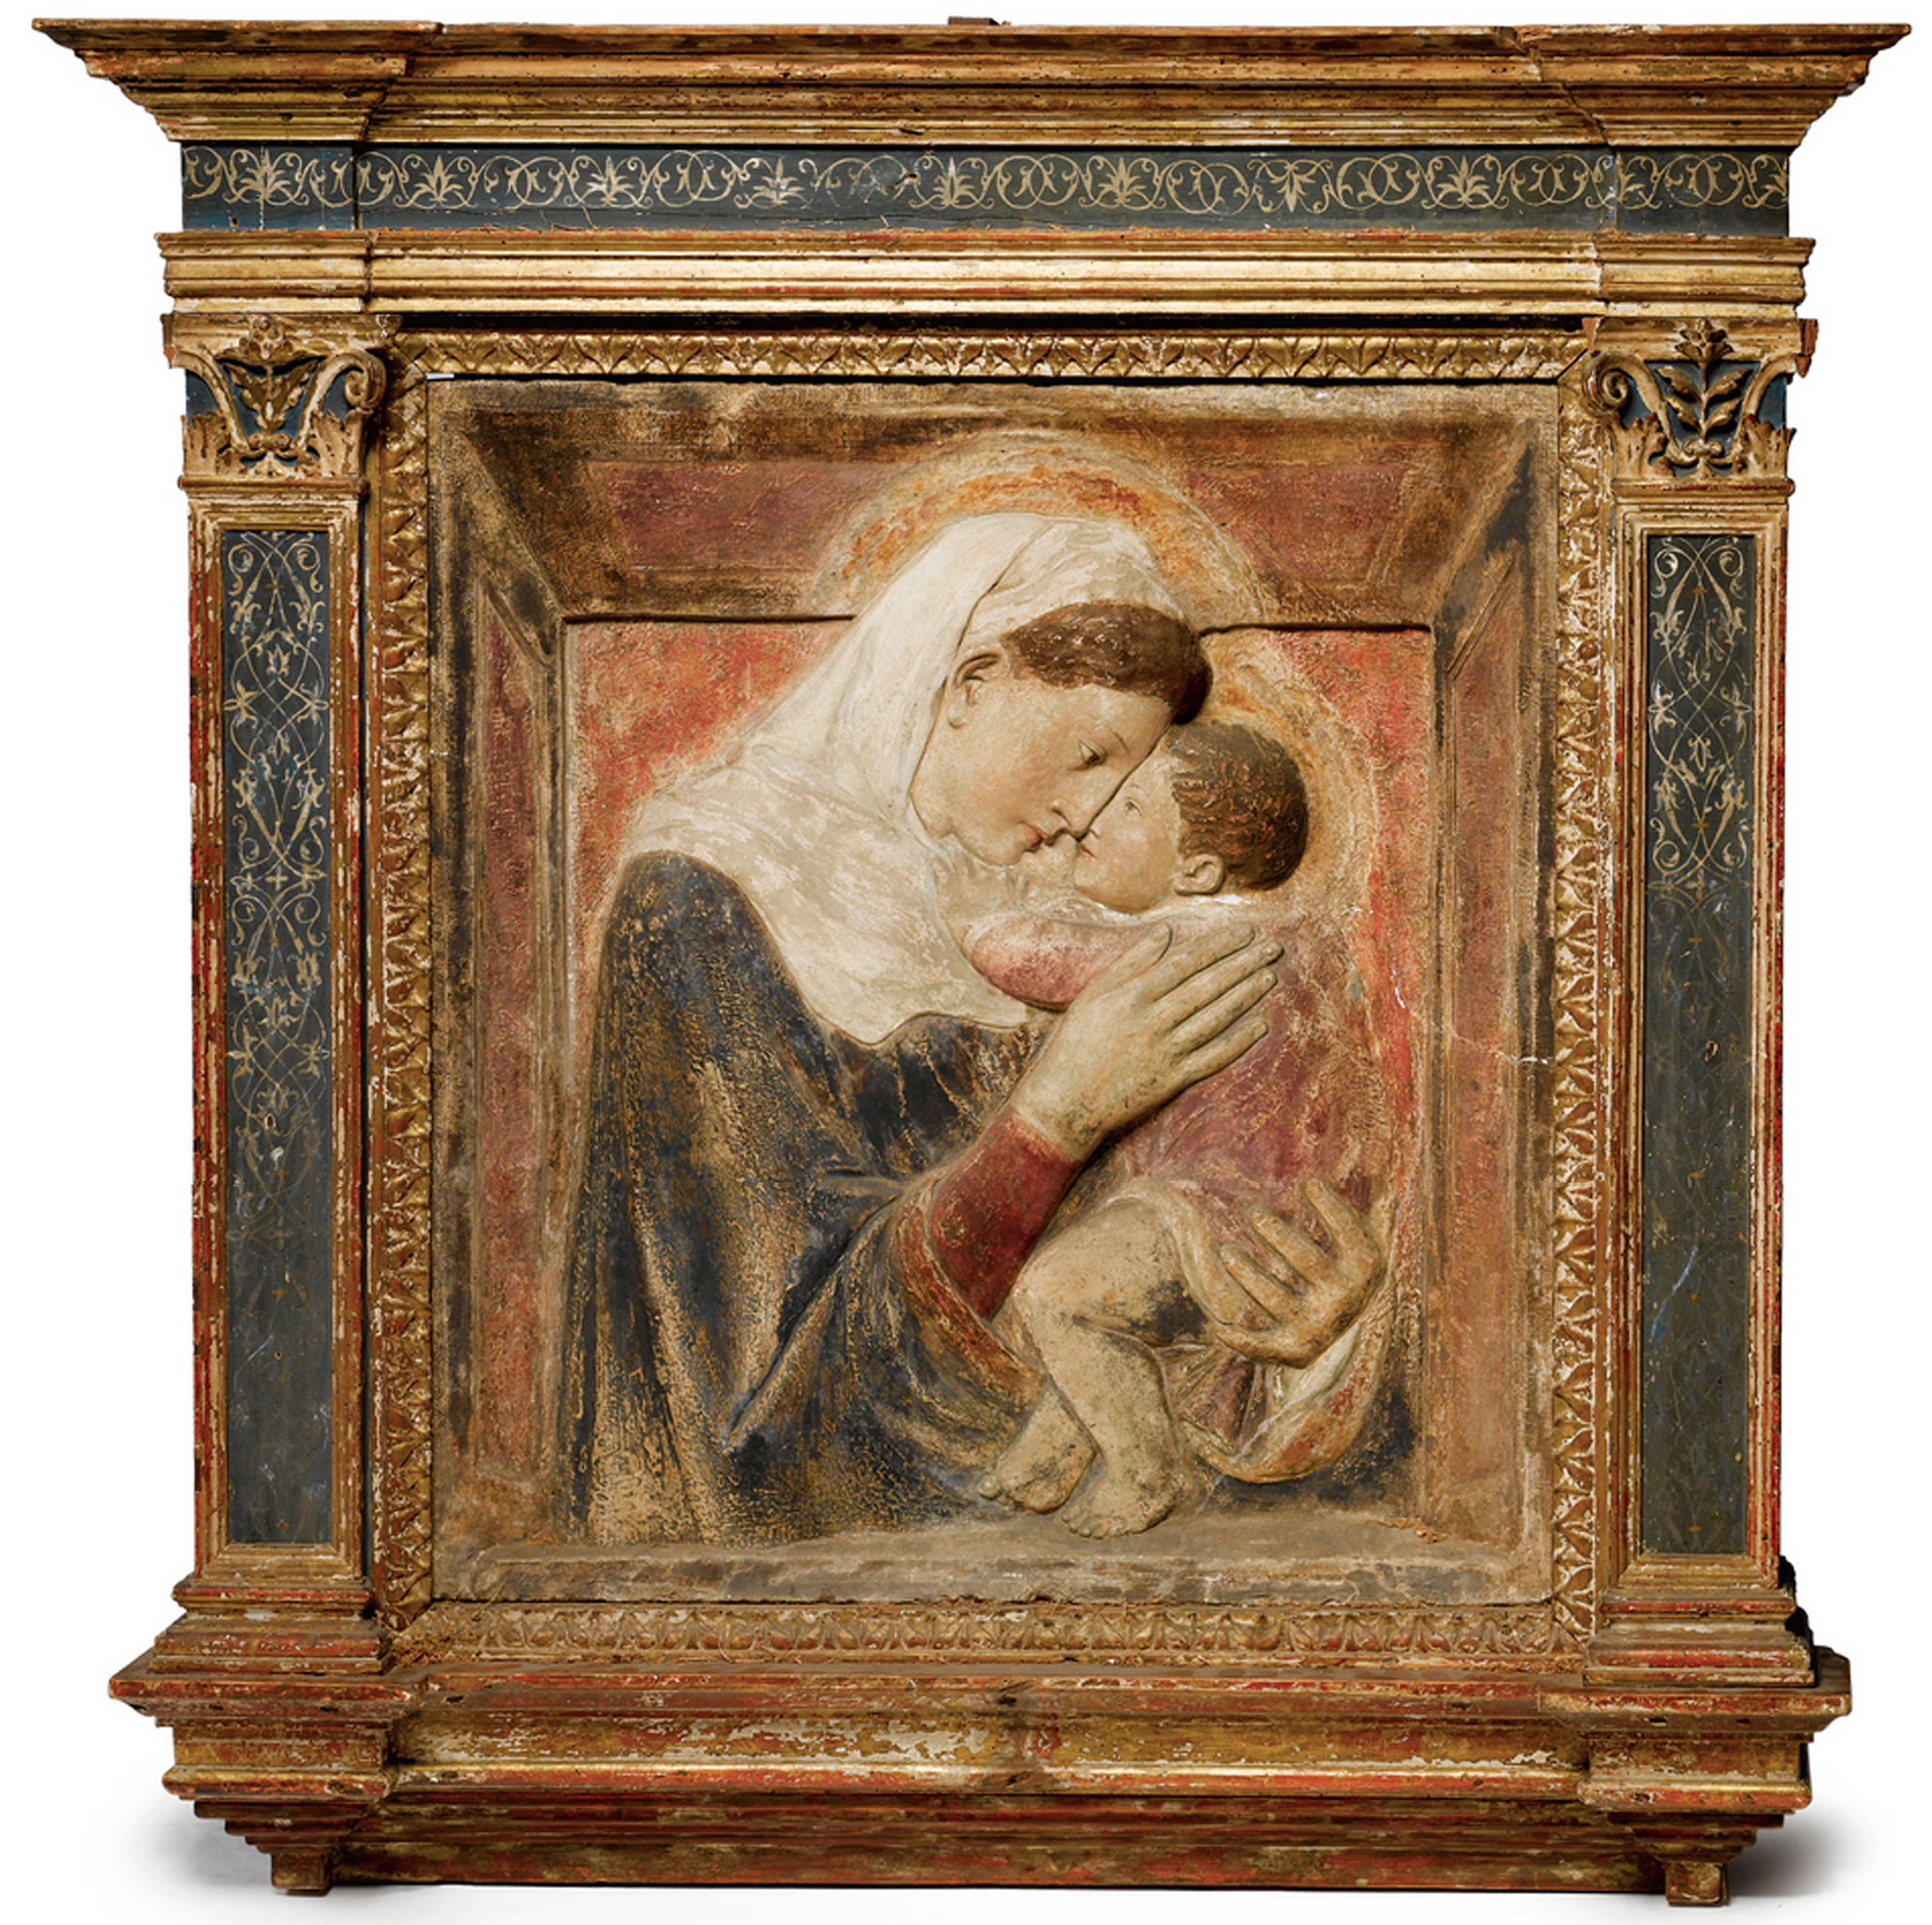 The frame blog articles interviews and reviews to do with donatello circa 1386 1466 after madonna and child gilt painted stucco relief italian in later frame overall 46 ins 1187 cm jeuxipadfo Image collections